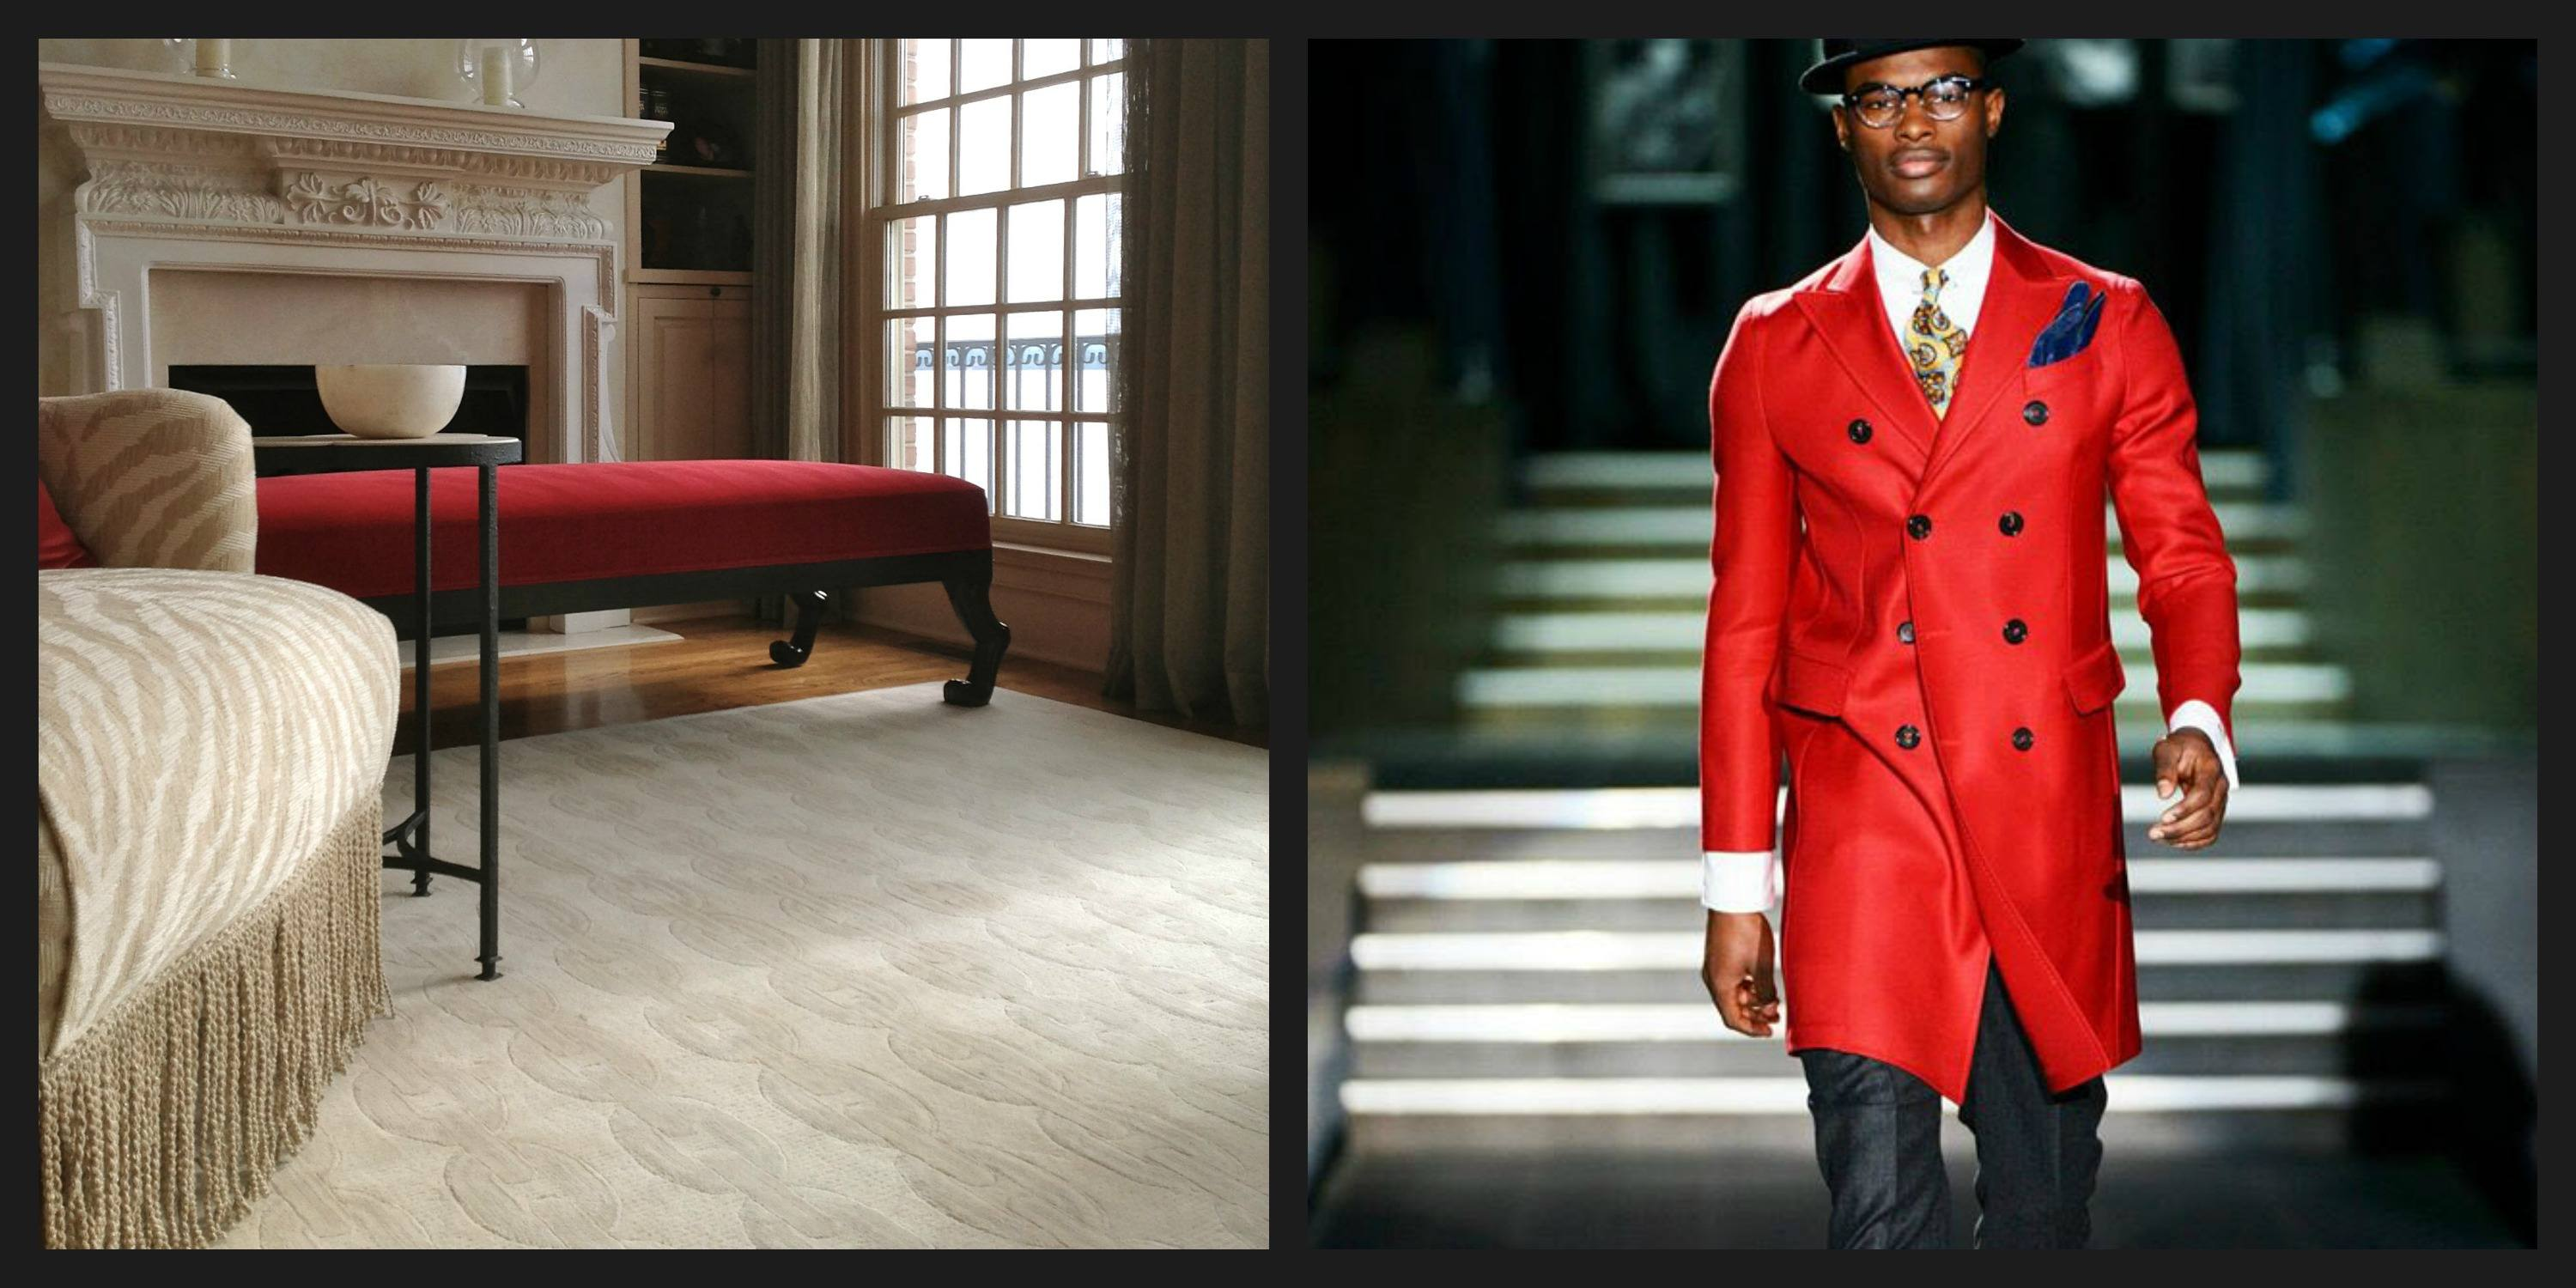 Red ottoman in a luxury cream living room, and man with bright red jacket